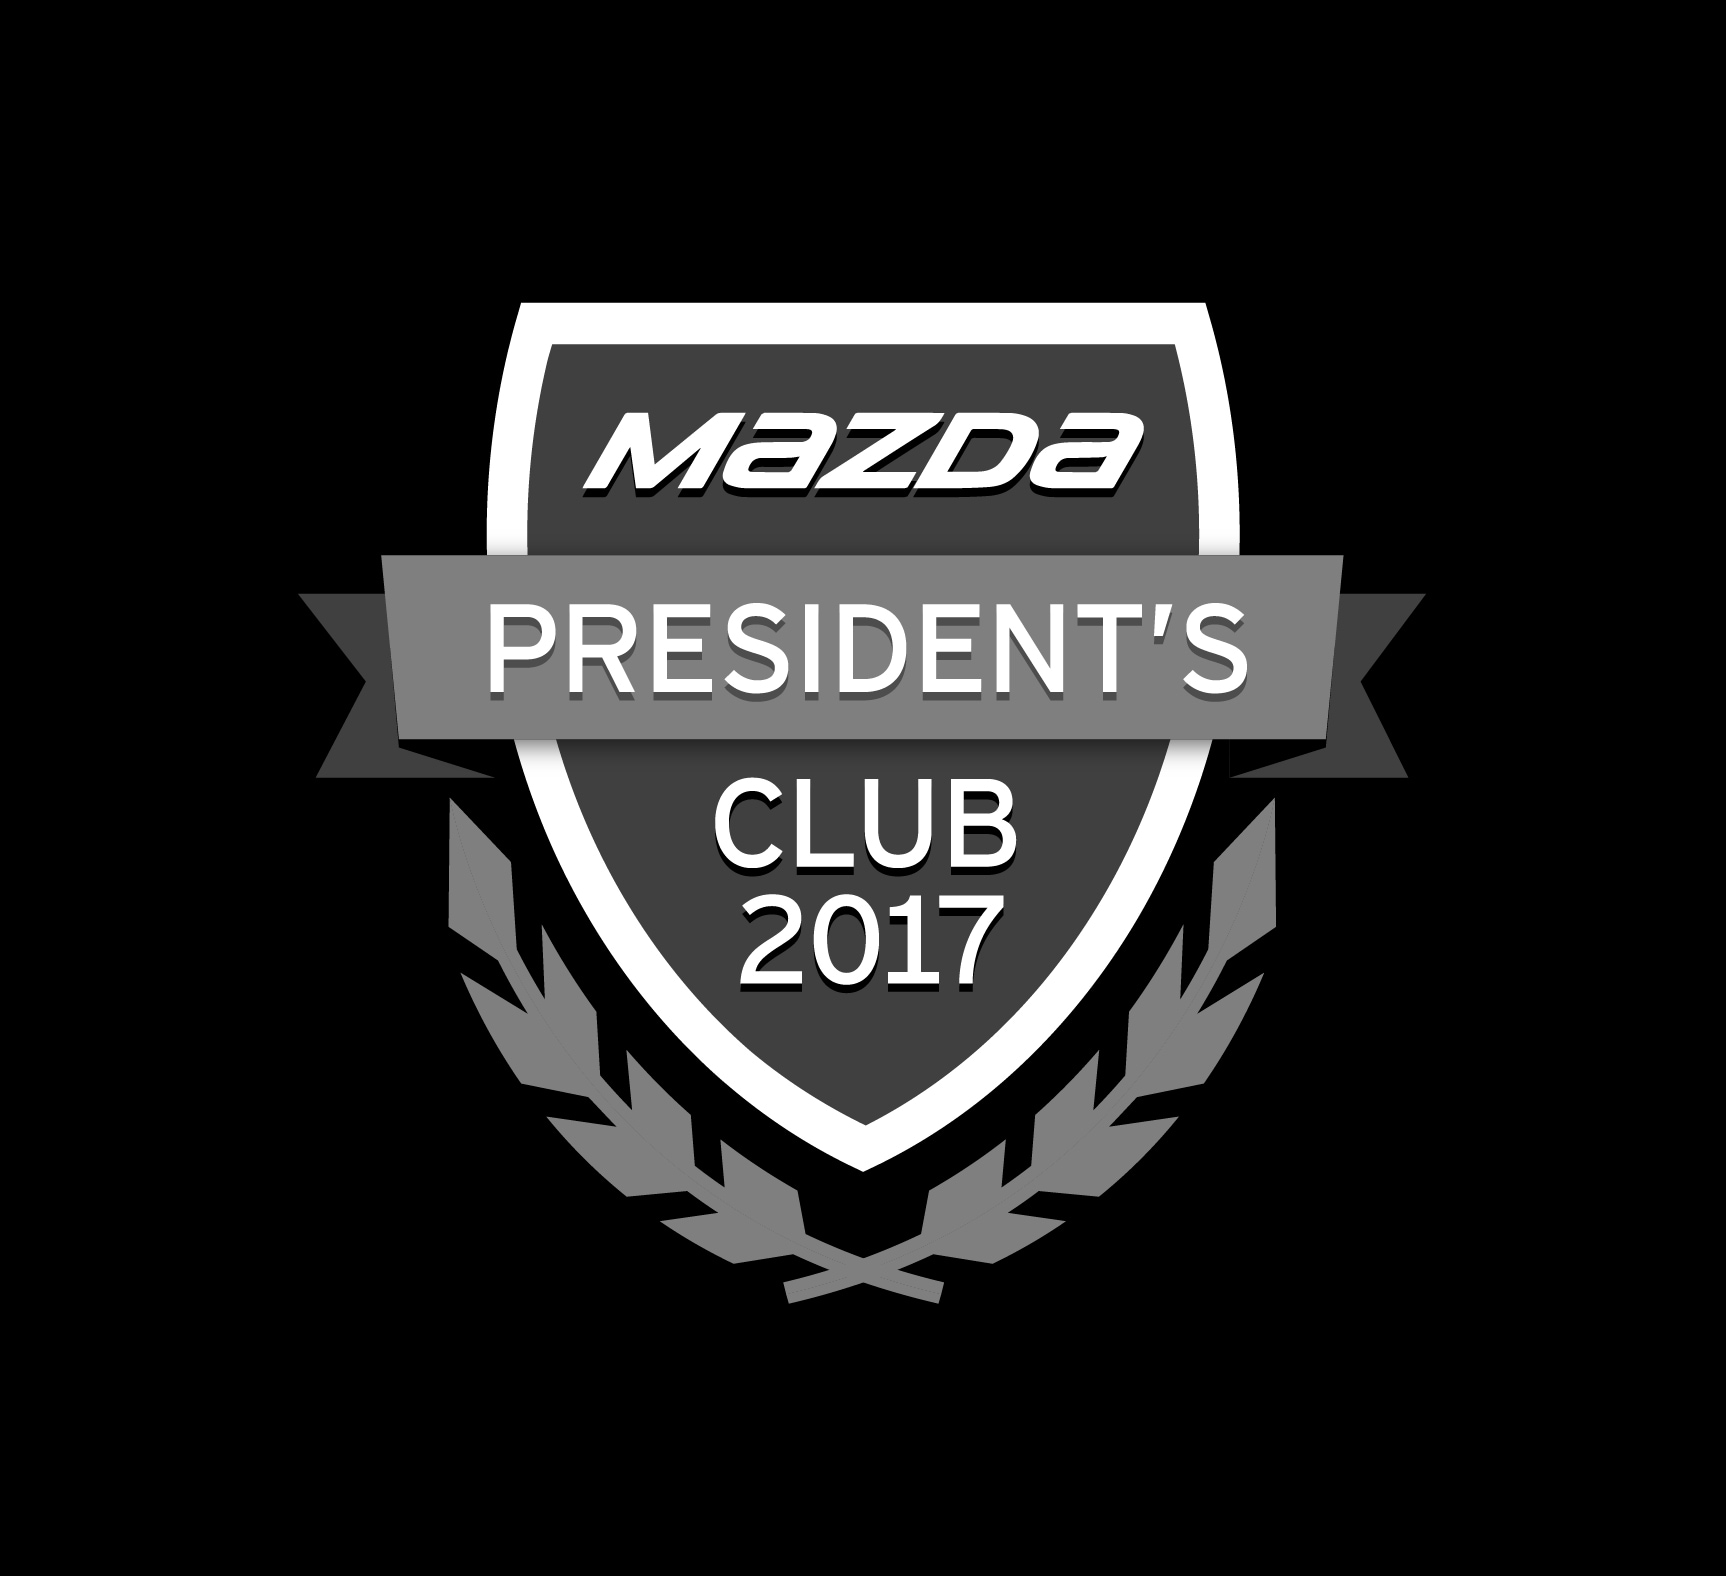 2017 Presidents Club Mazda Dealership NJ